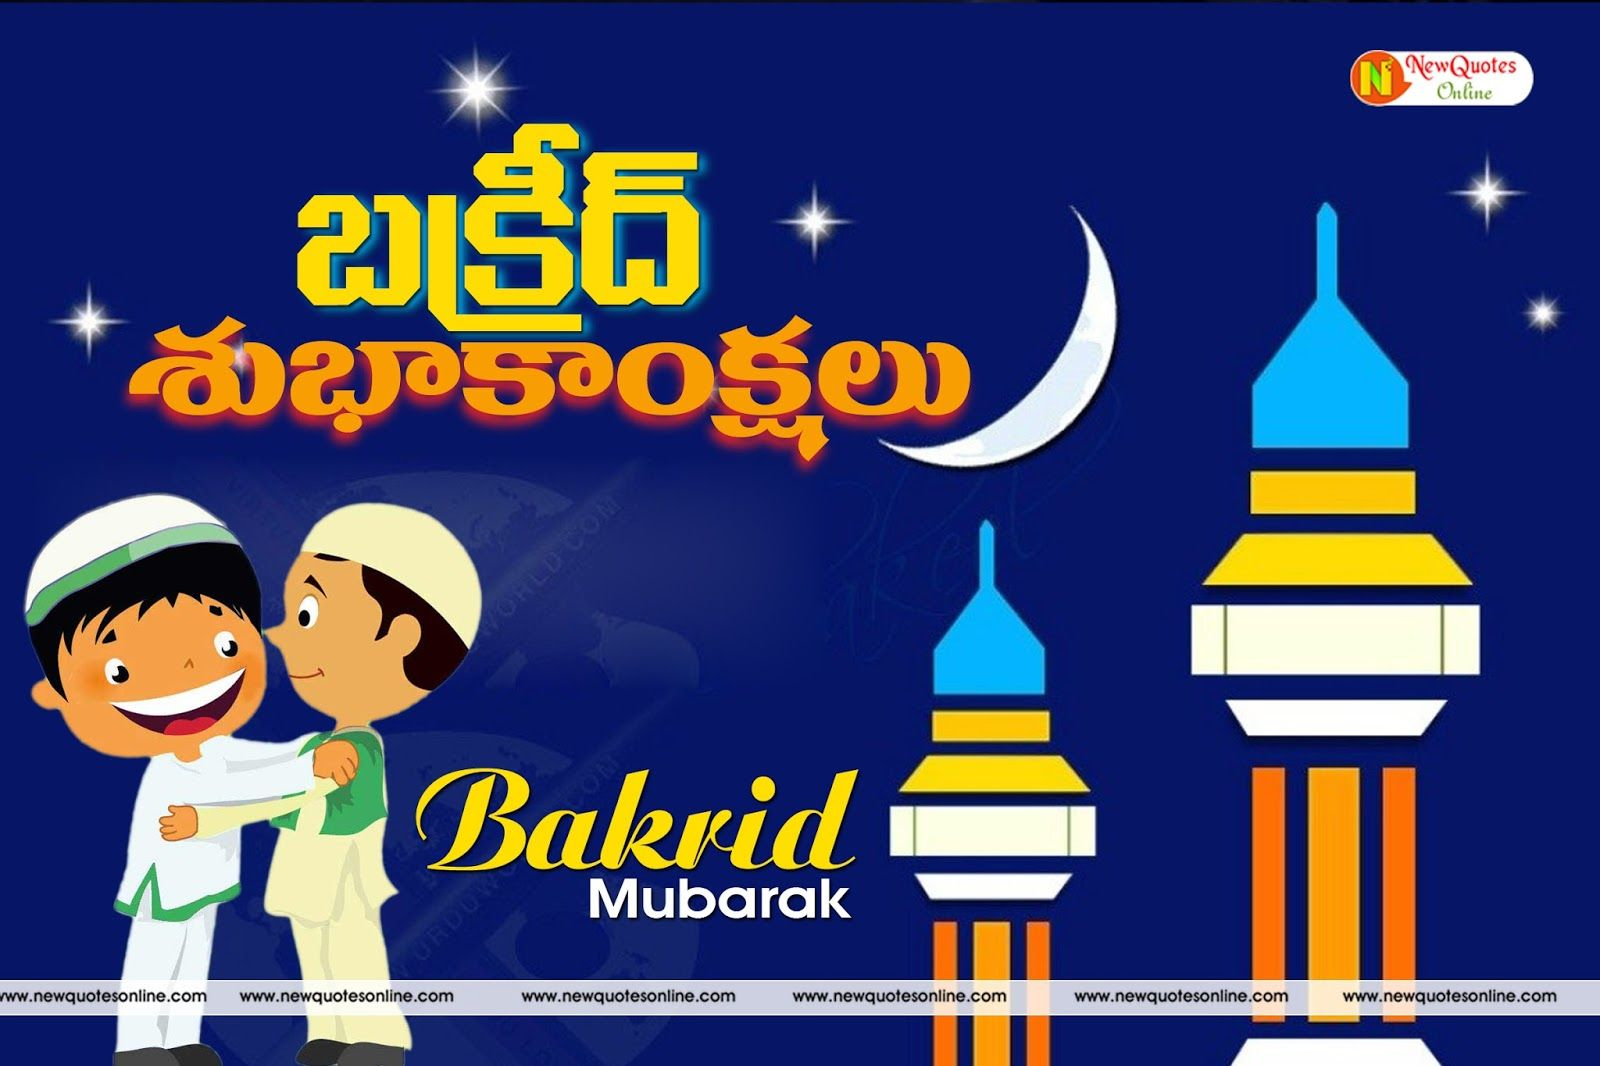 Happy eid greetings cards download and share this eid mubarak happy eid greetings cards download and share this eid mubarak 2016 images on kristyandbryce Image collections